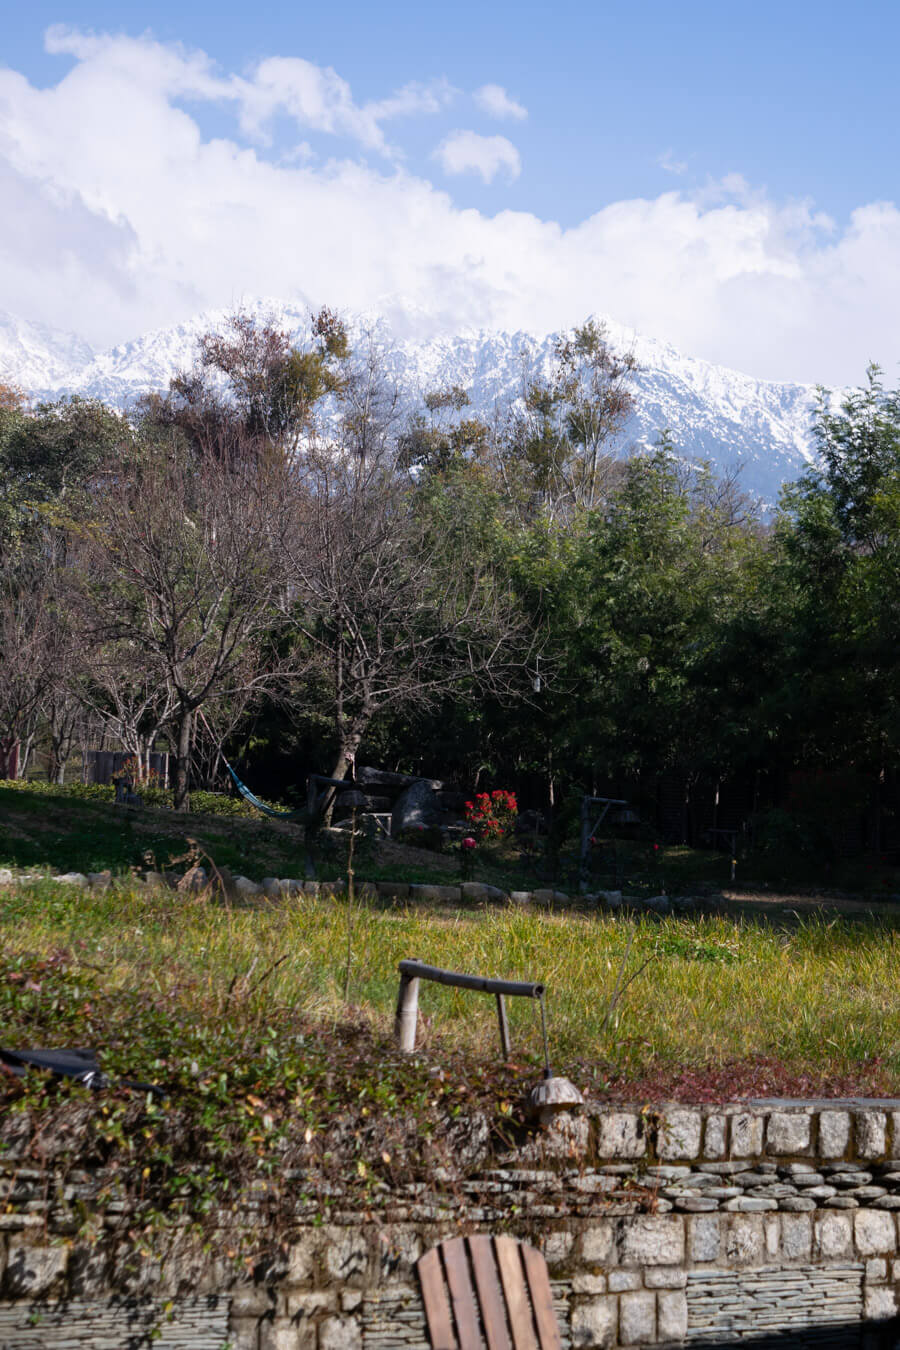 The Lodge garden and the Dhauladhar range